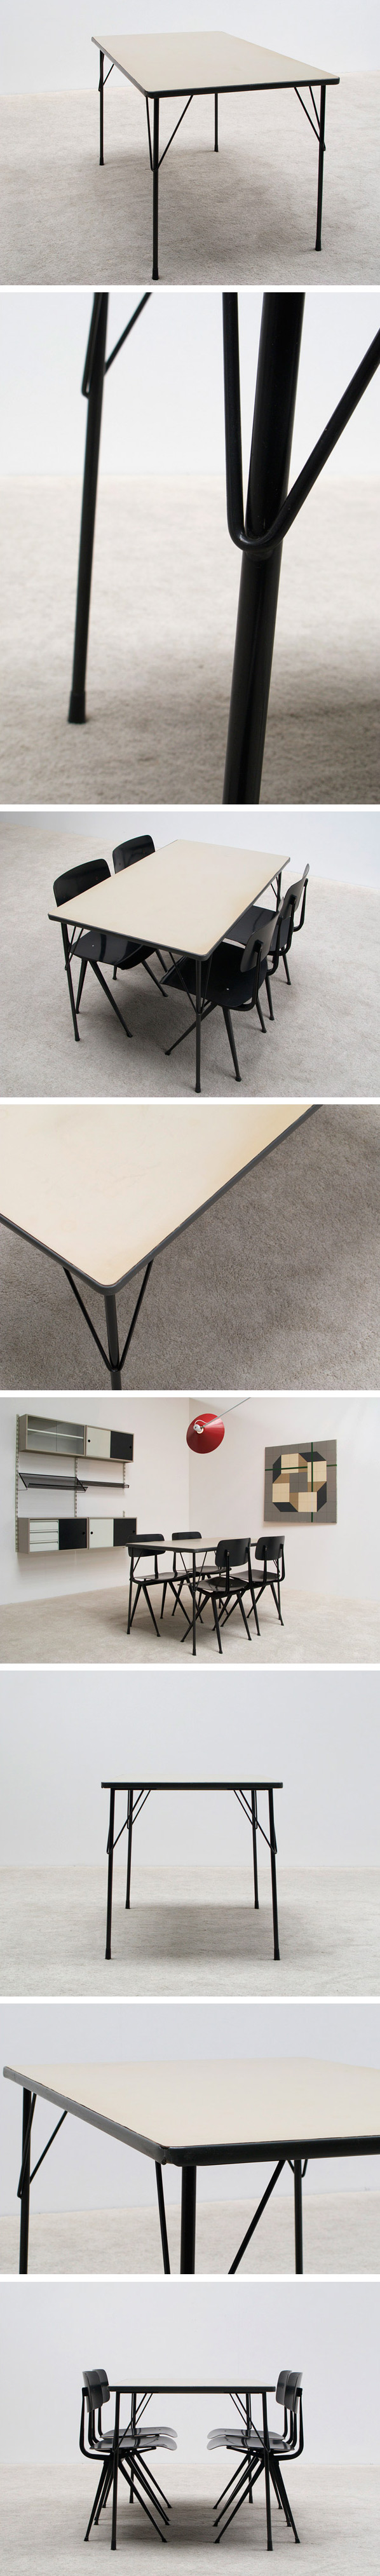 Wim Rietveld industrial dinning table Gispen Large